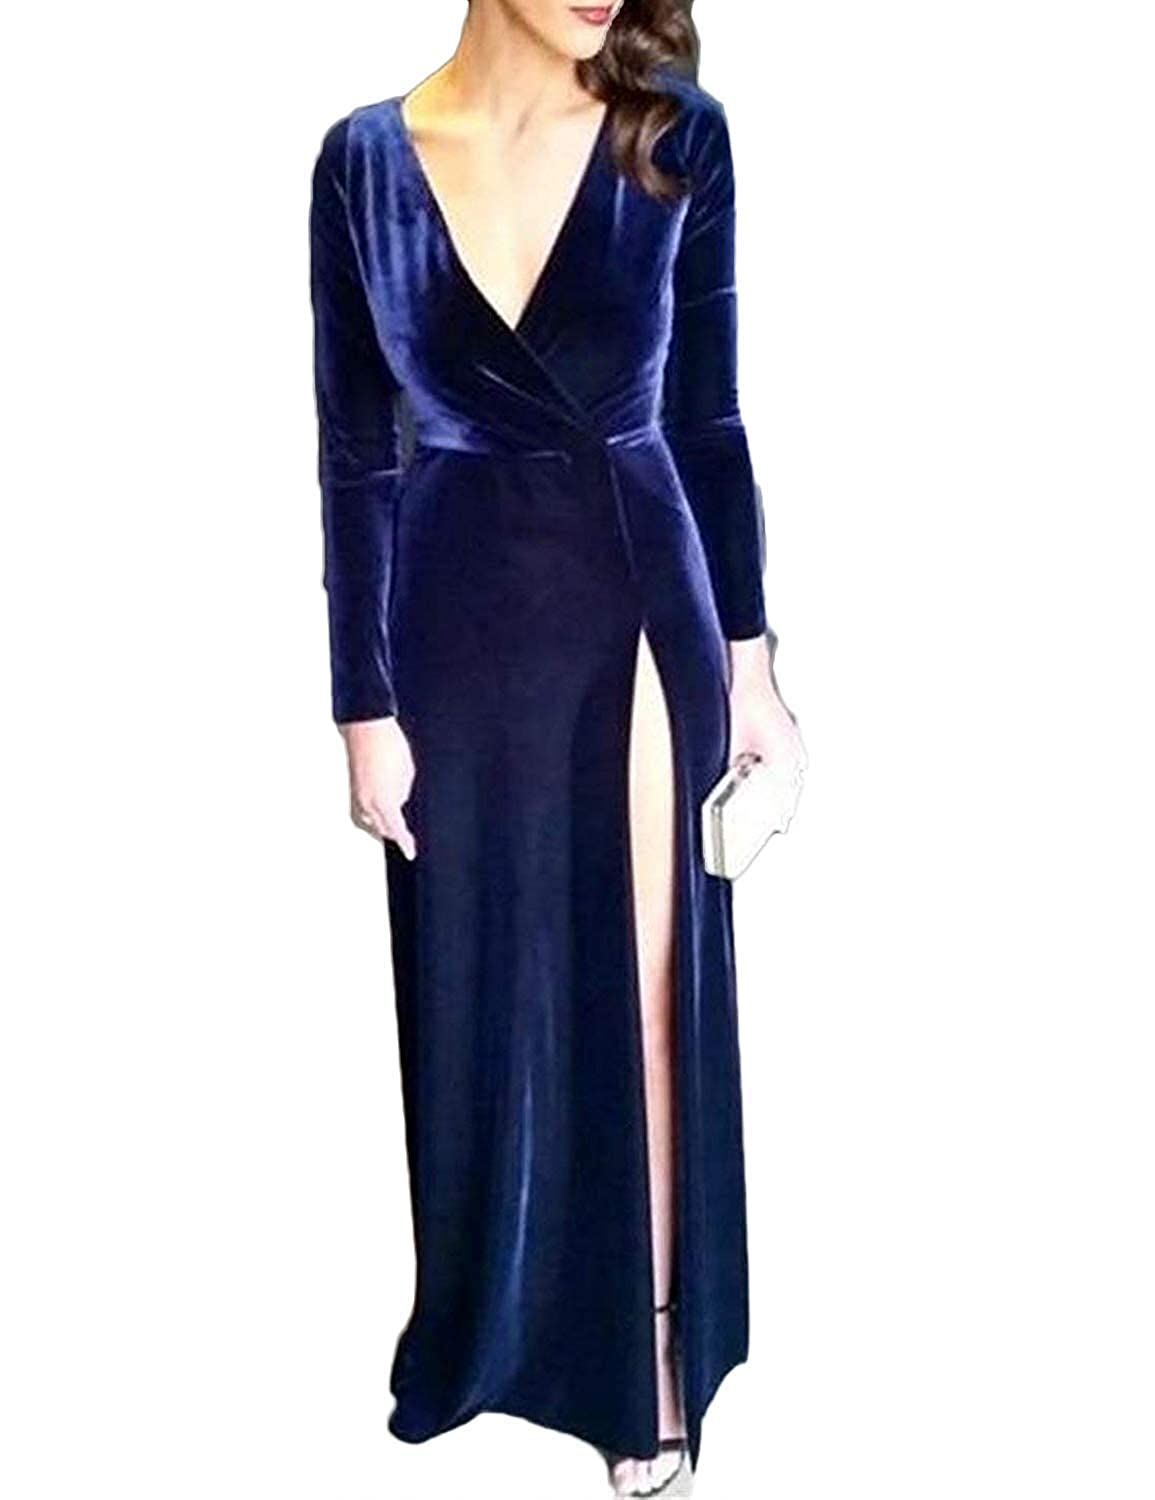 Royal bluee Sulidi Women's Velvet Long Sleeve Mermaid Prom Dresses V Neck Open Back High Slit Side Evening Formal Party Gowns C183